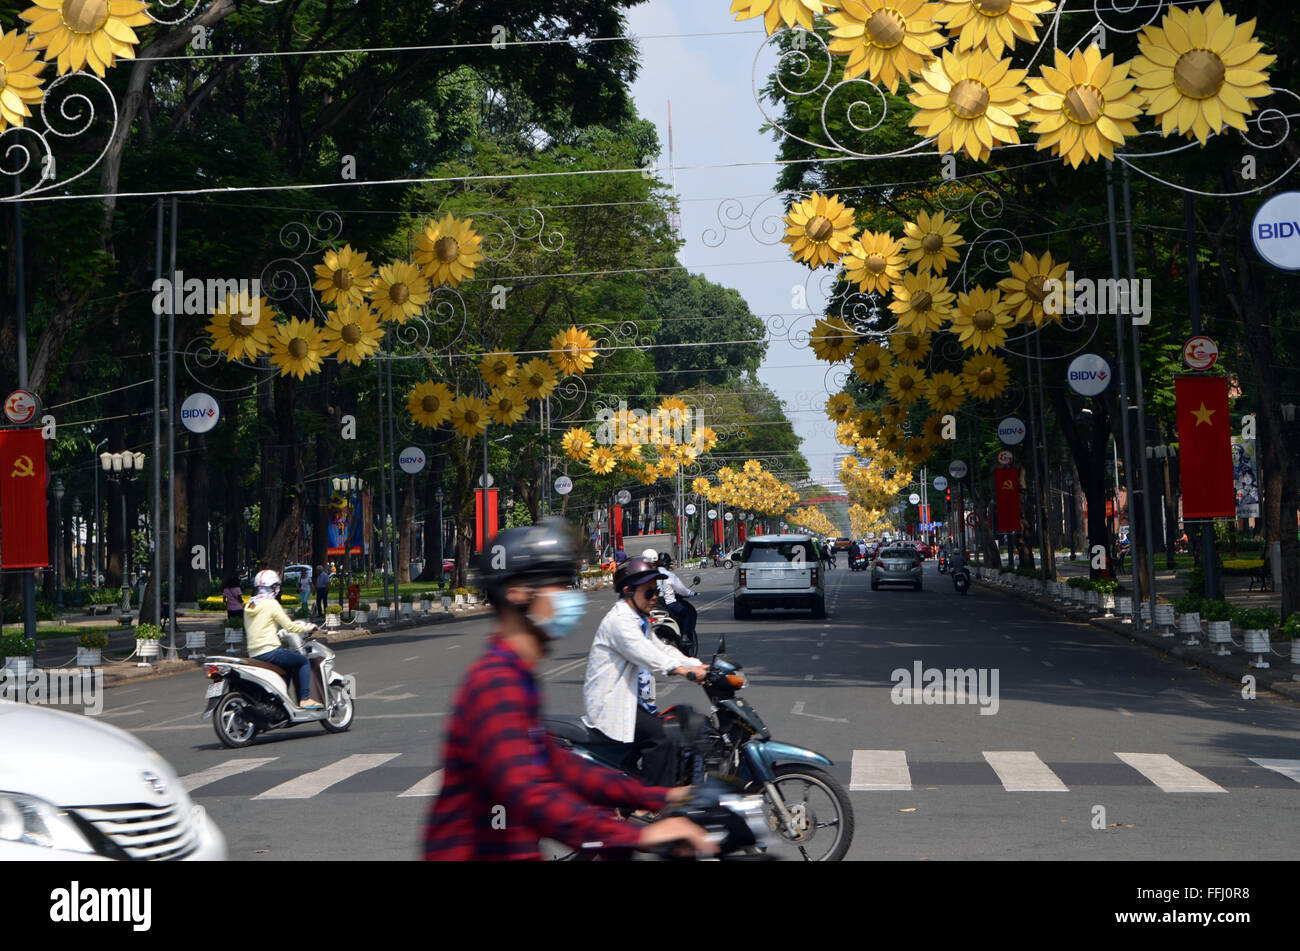 Saigon,VietNam.The streets gaily covered with bunting, flags, and these flowers as people get around onmotor bikes - Stock Image